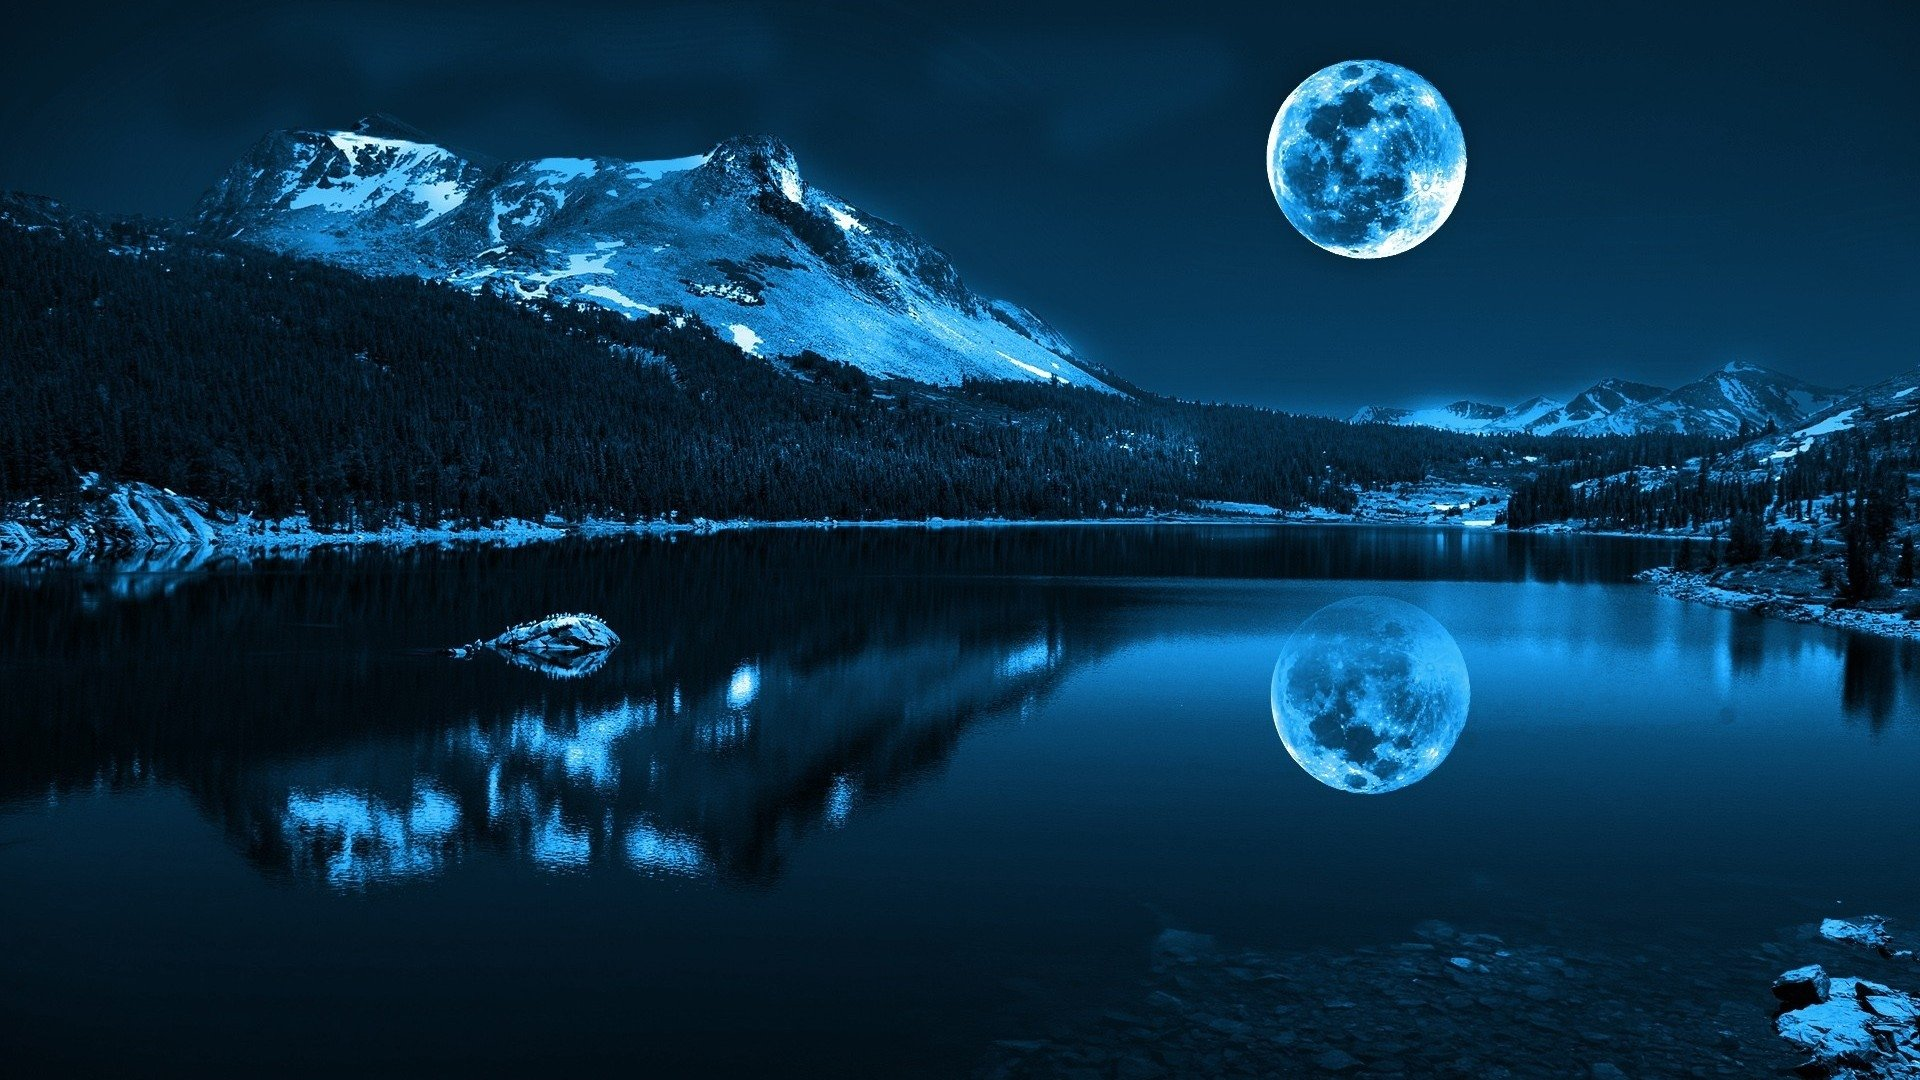 Full Hd Moon Wallpaper